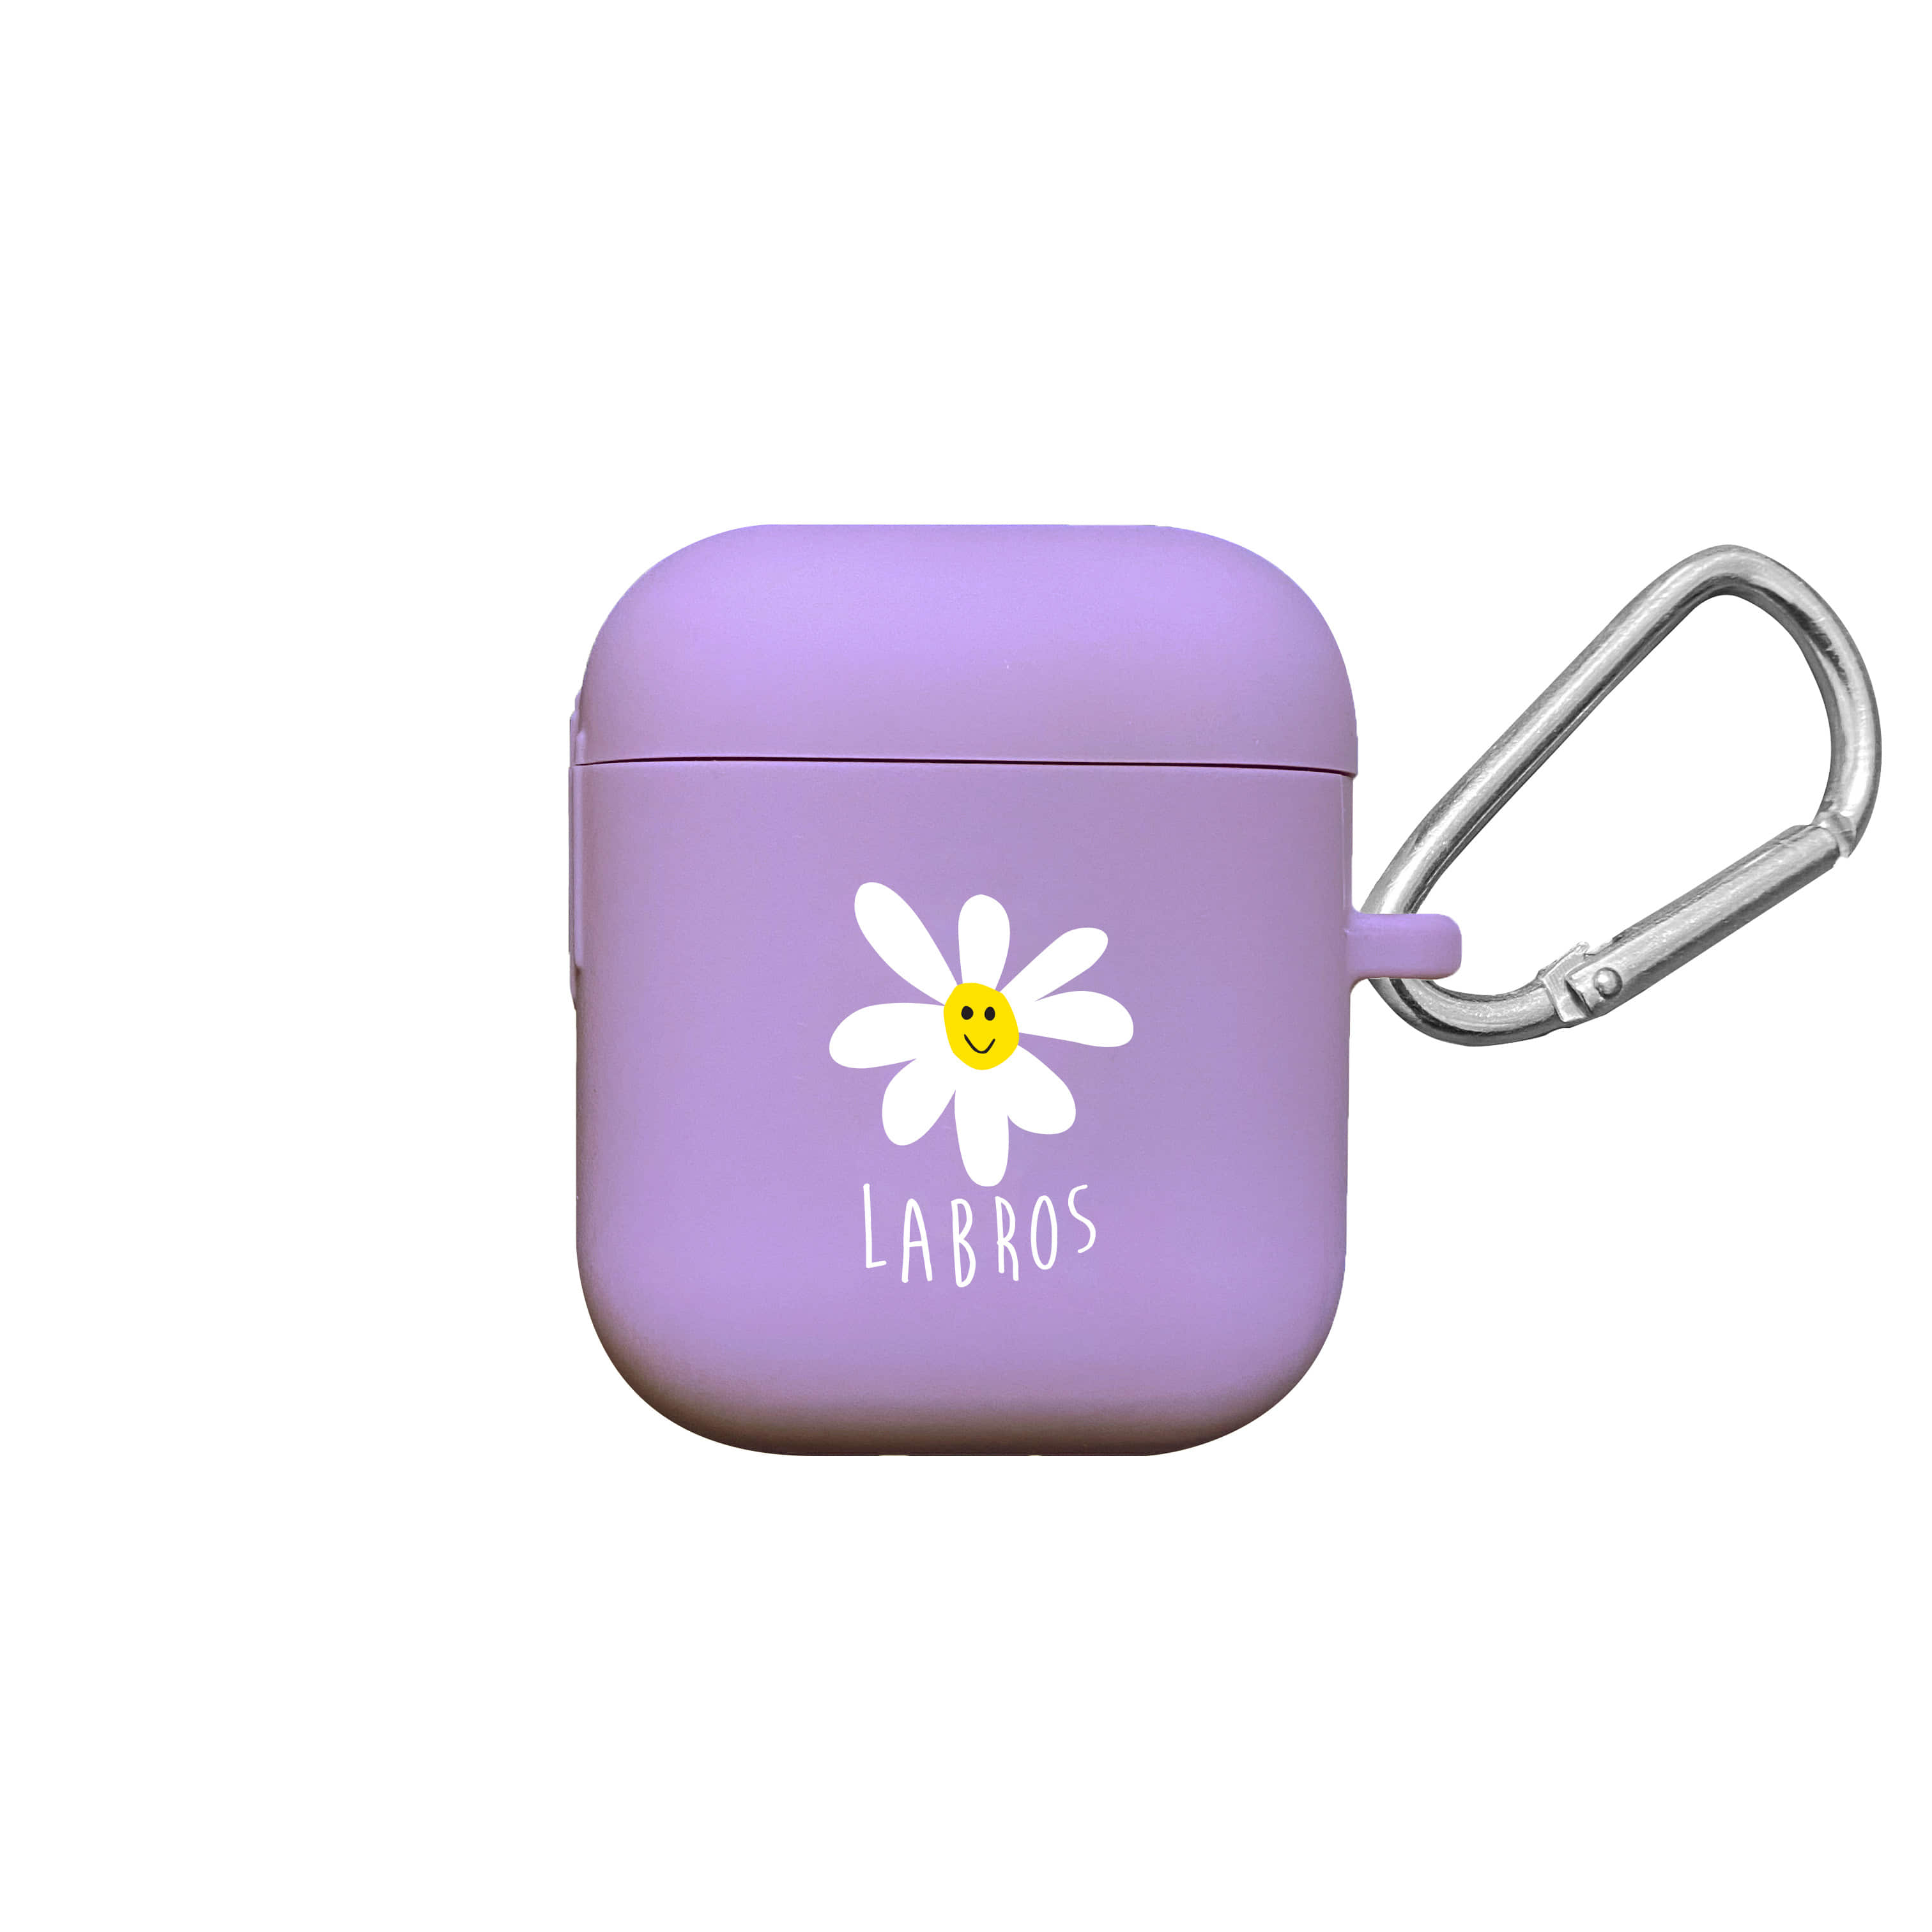 Daisy Airpods Case (Lavender)